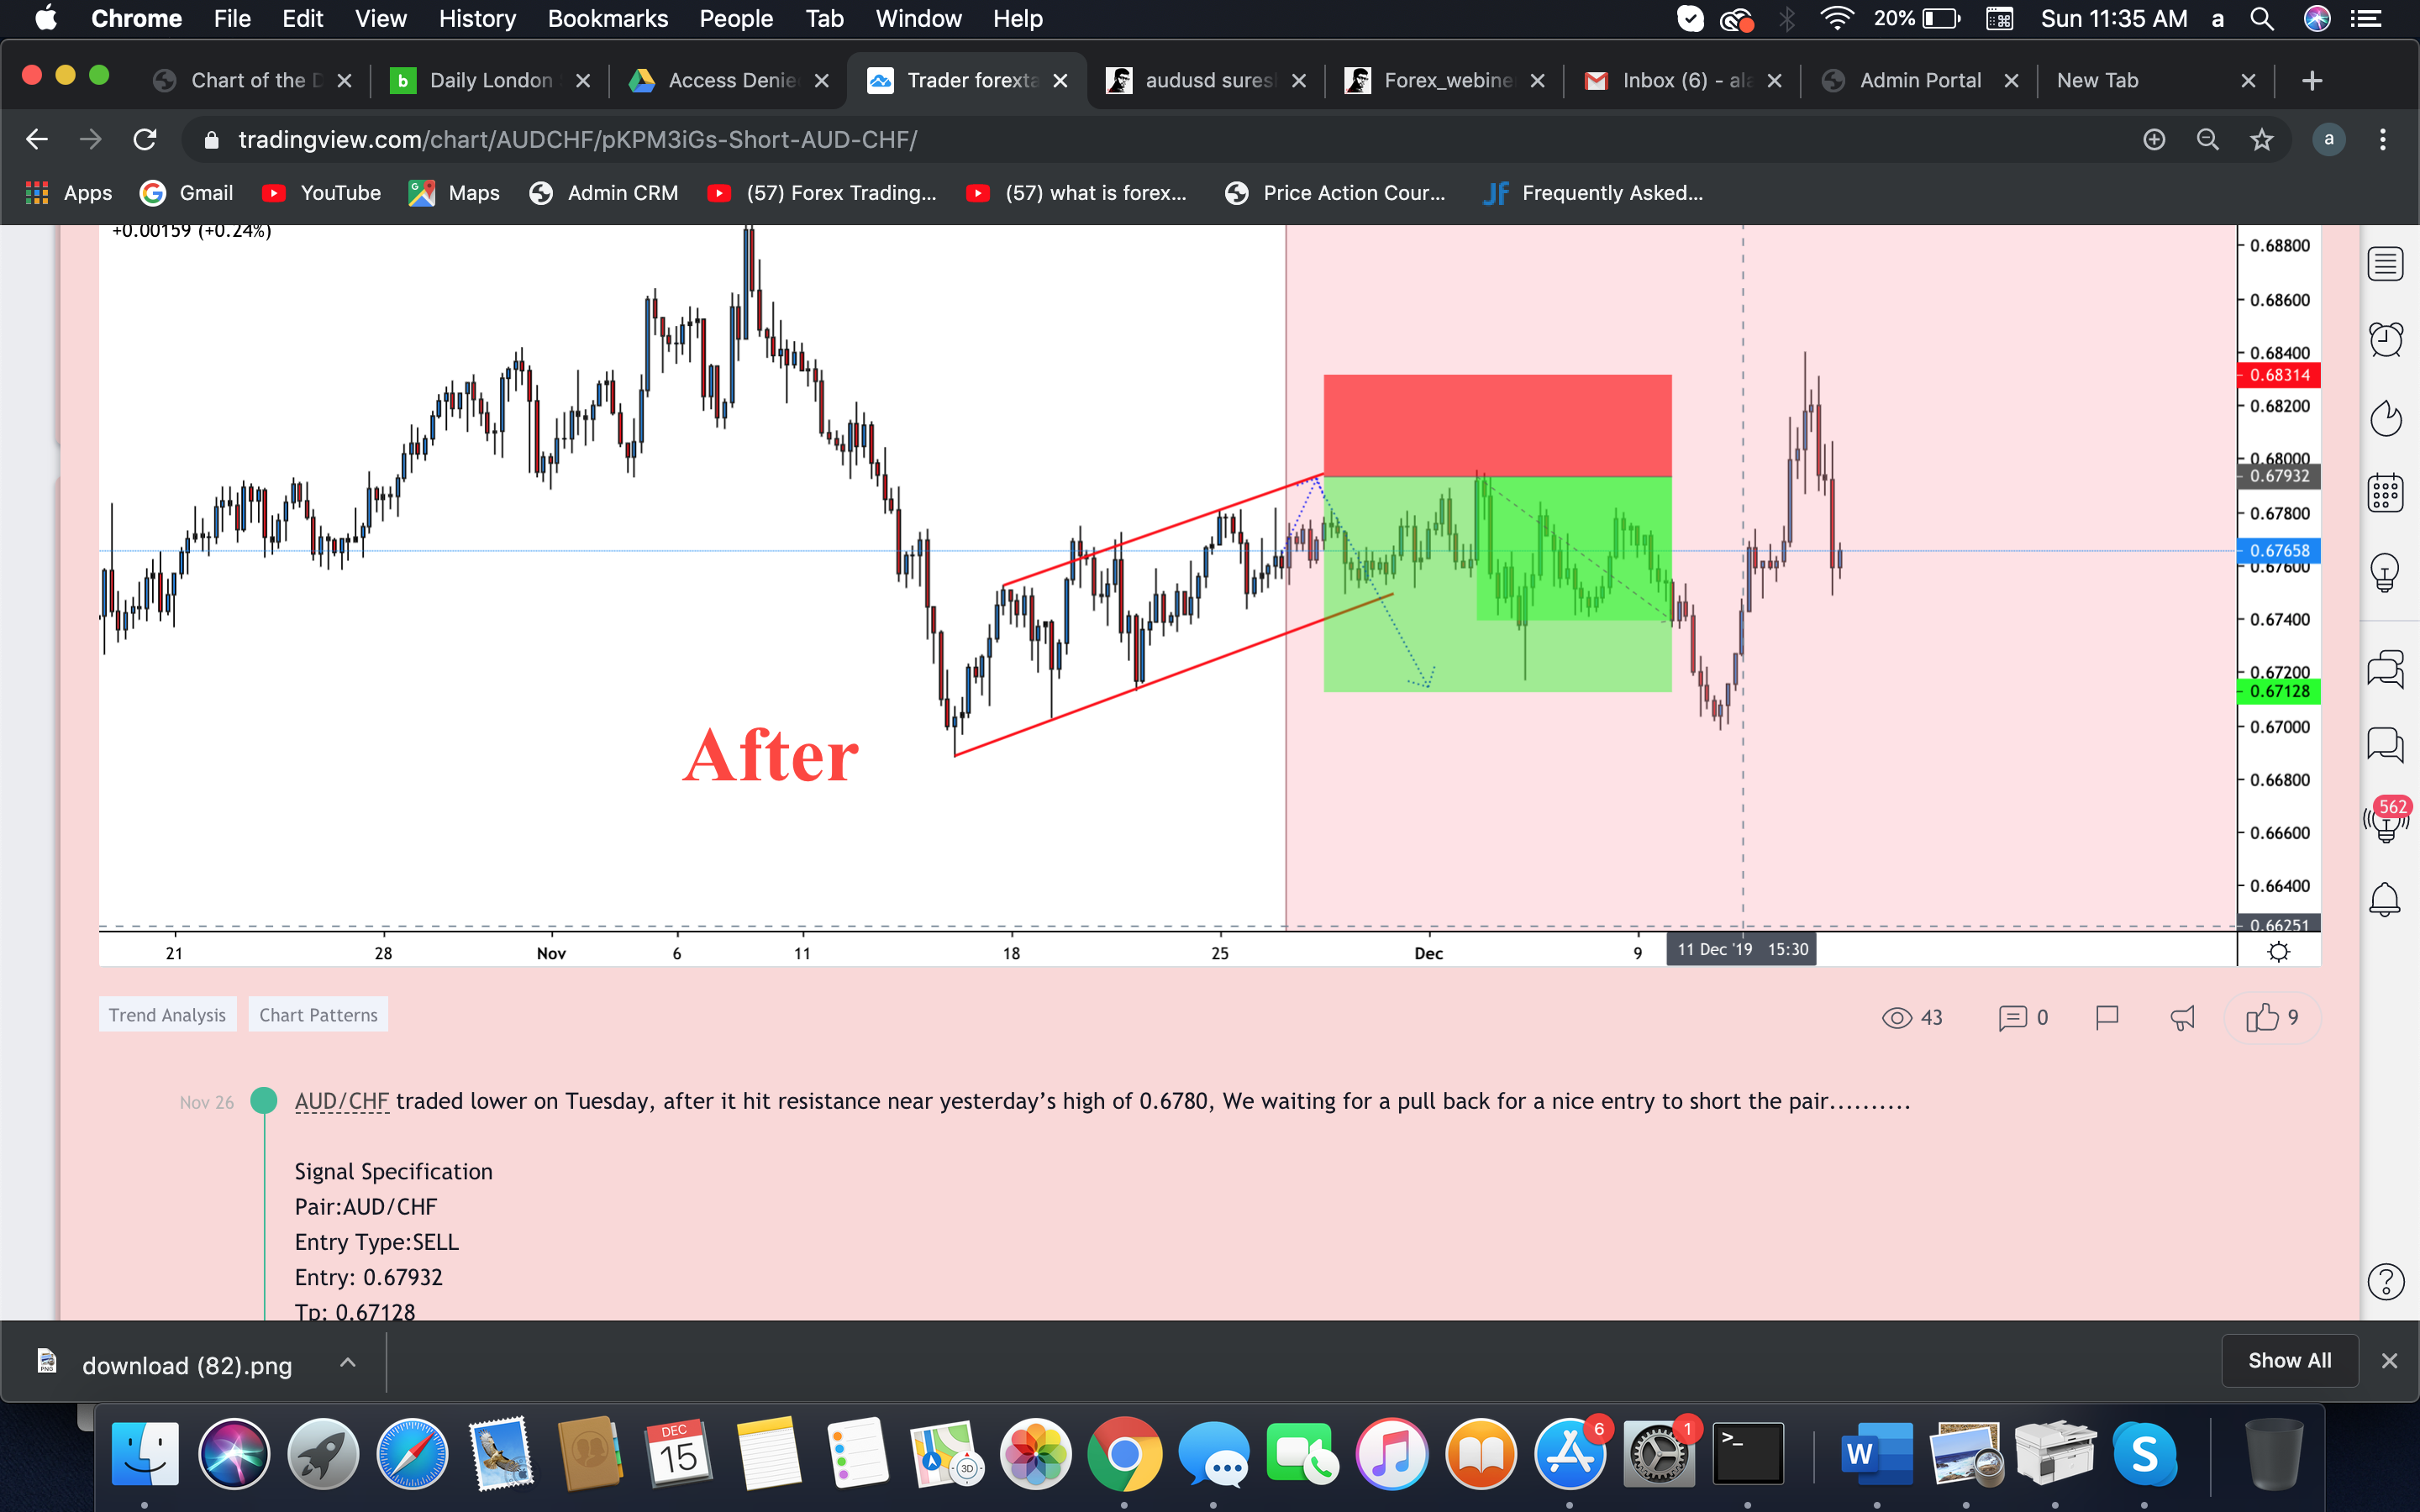 AUD/CHF :GATHERED 80 GREEN PIPS.